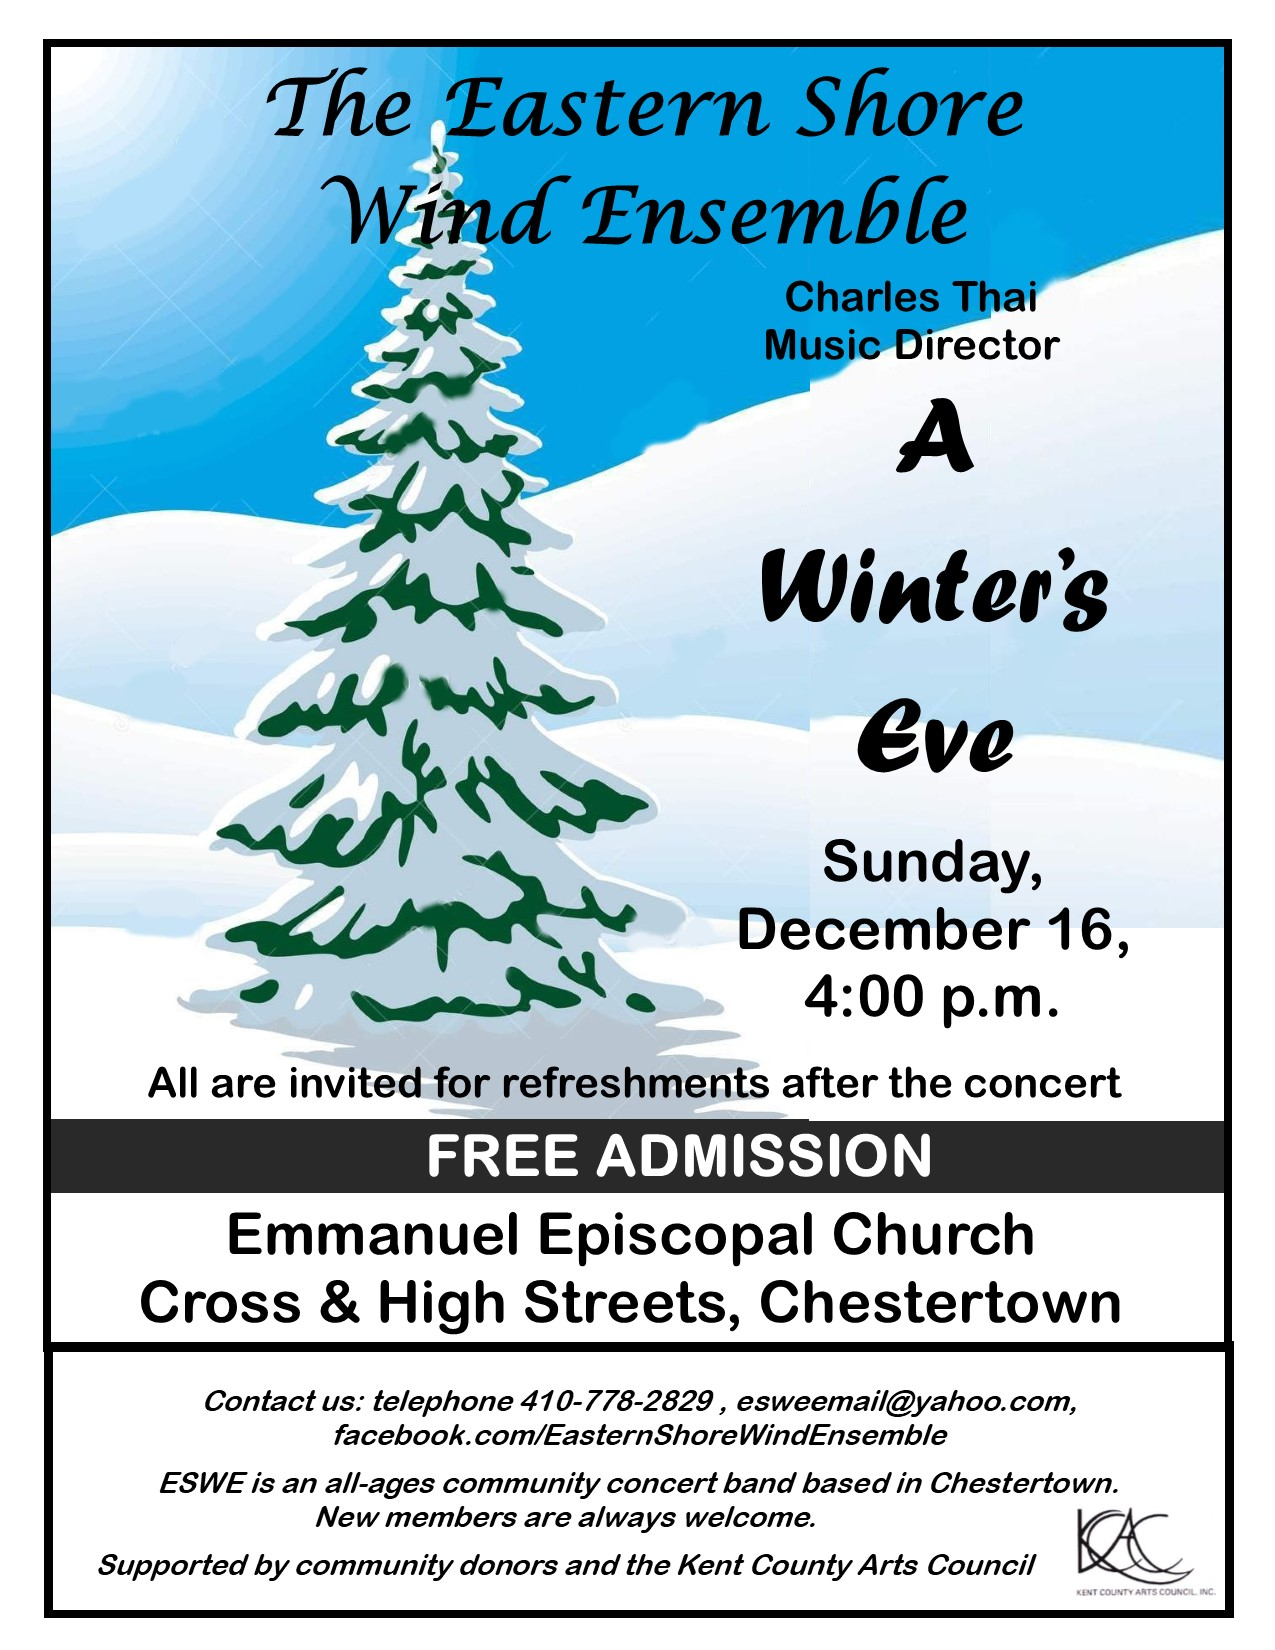 A Winter's Eve: Free Band Concert by the Eastern Shore Wind Ensemble